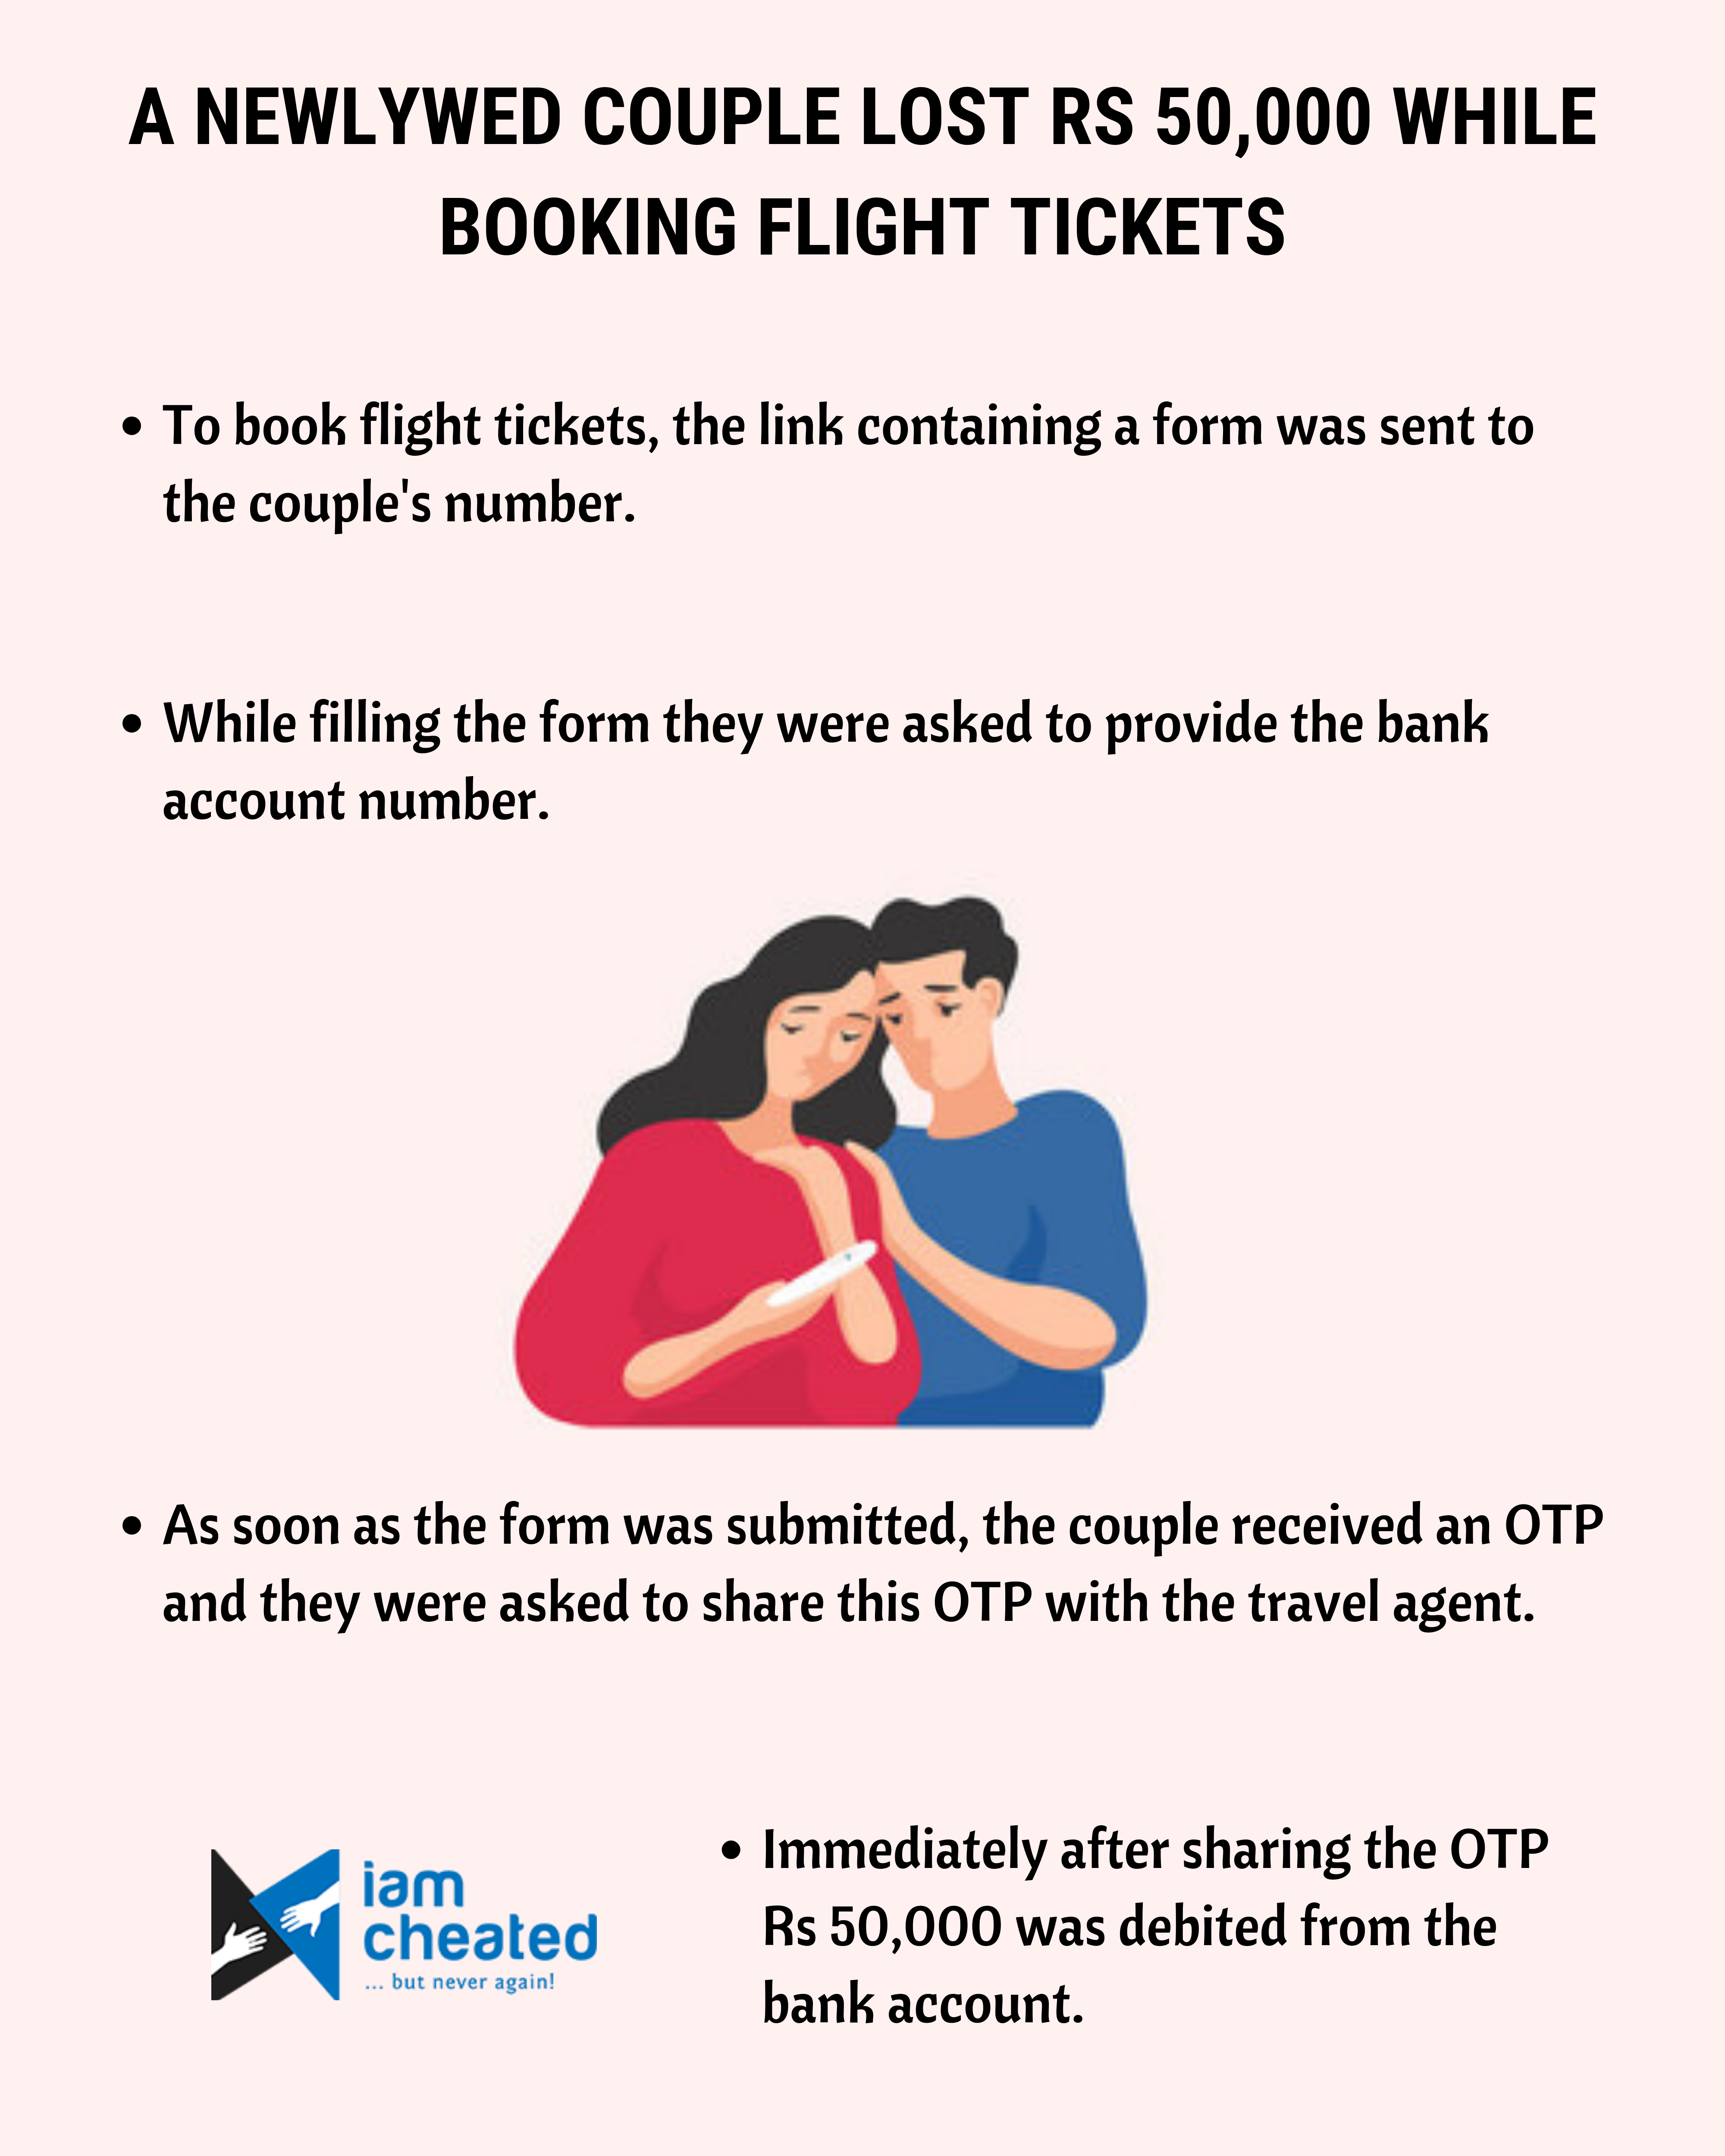 A newlywed couple lost Rs 50,000 while booking flight tickets